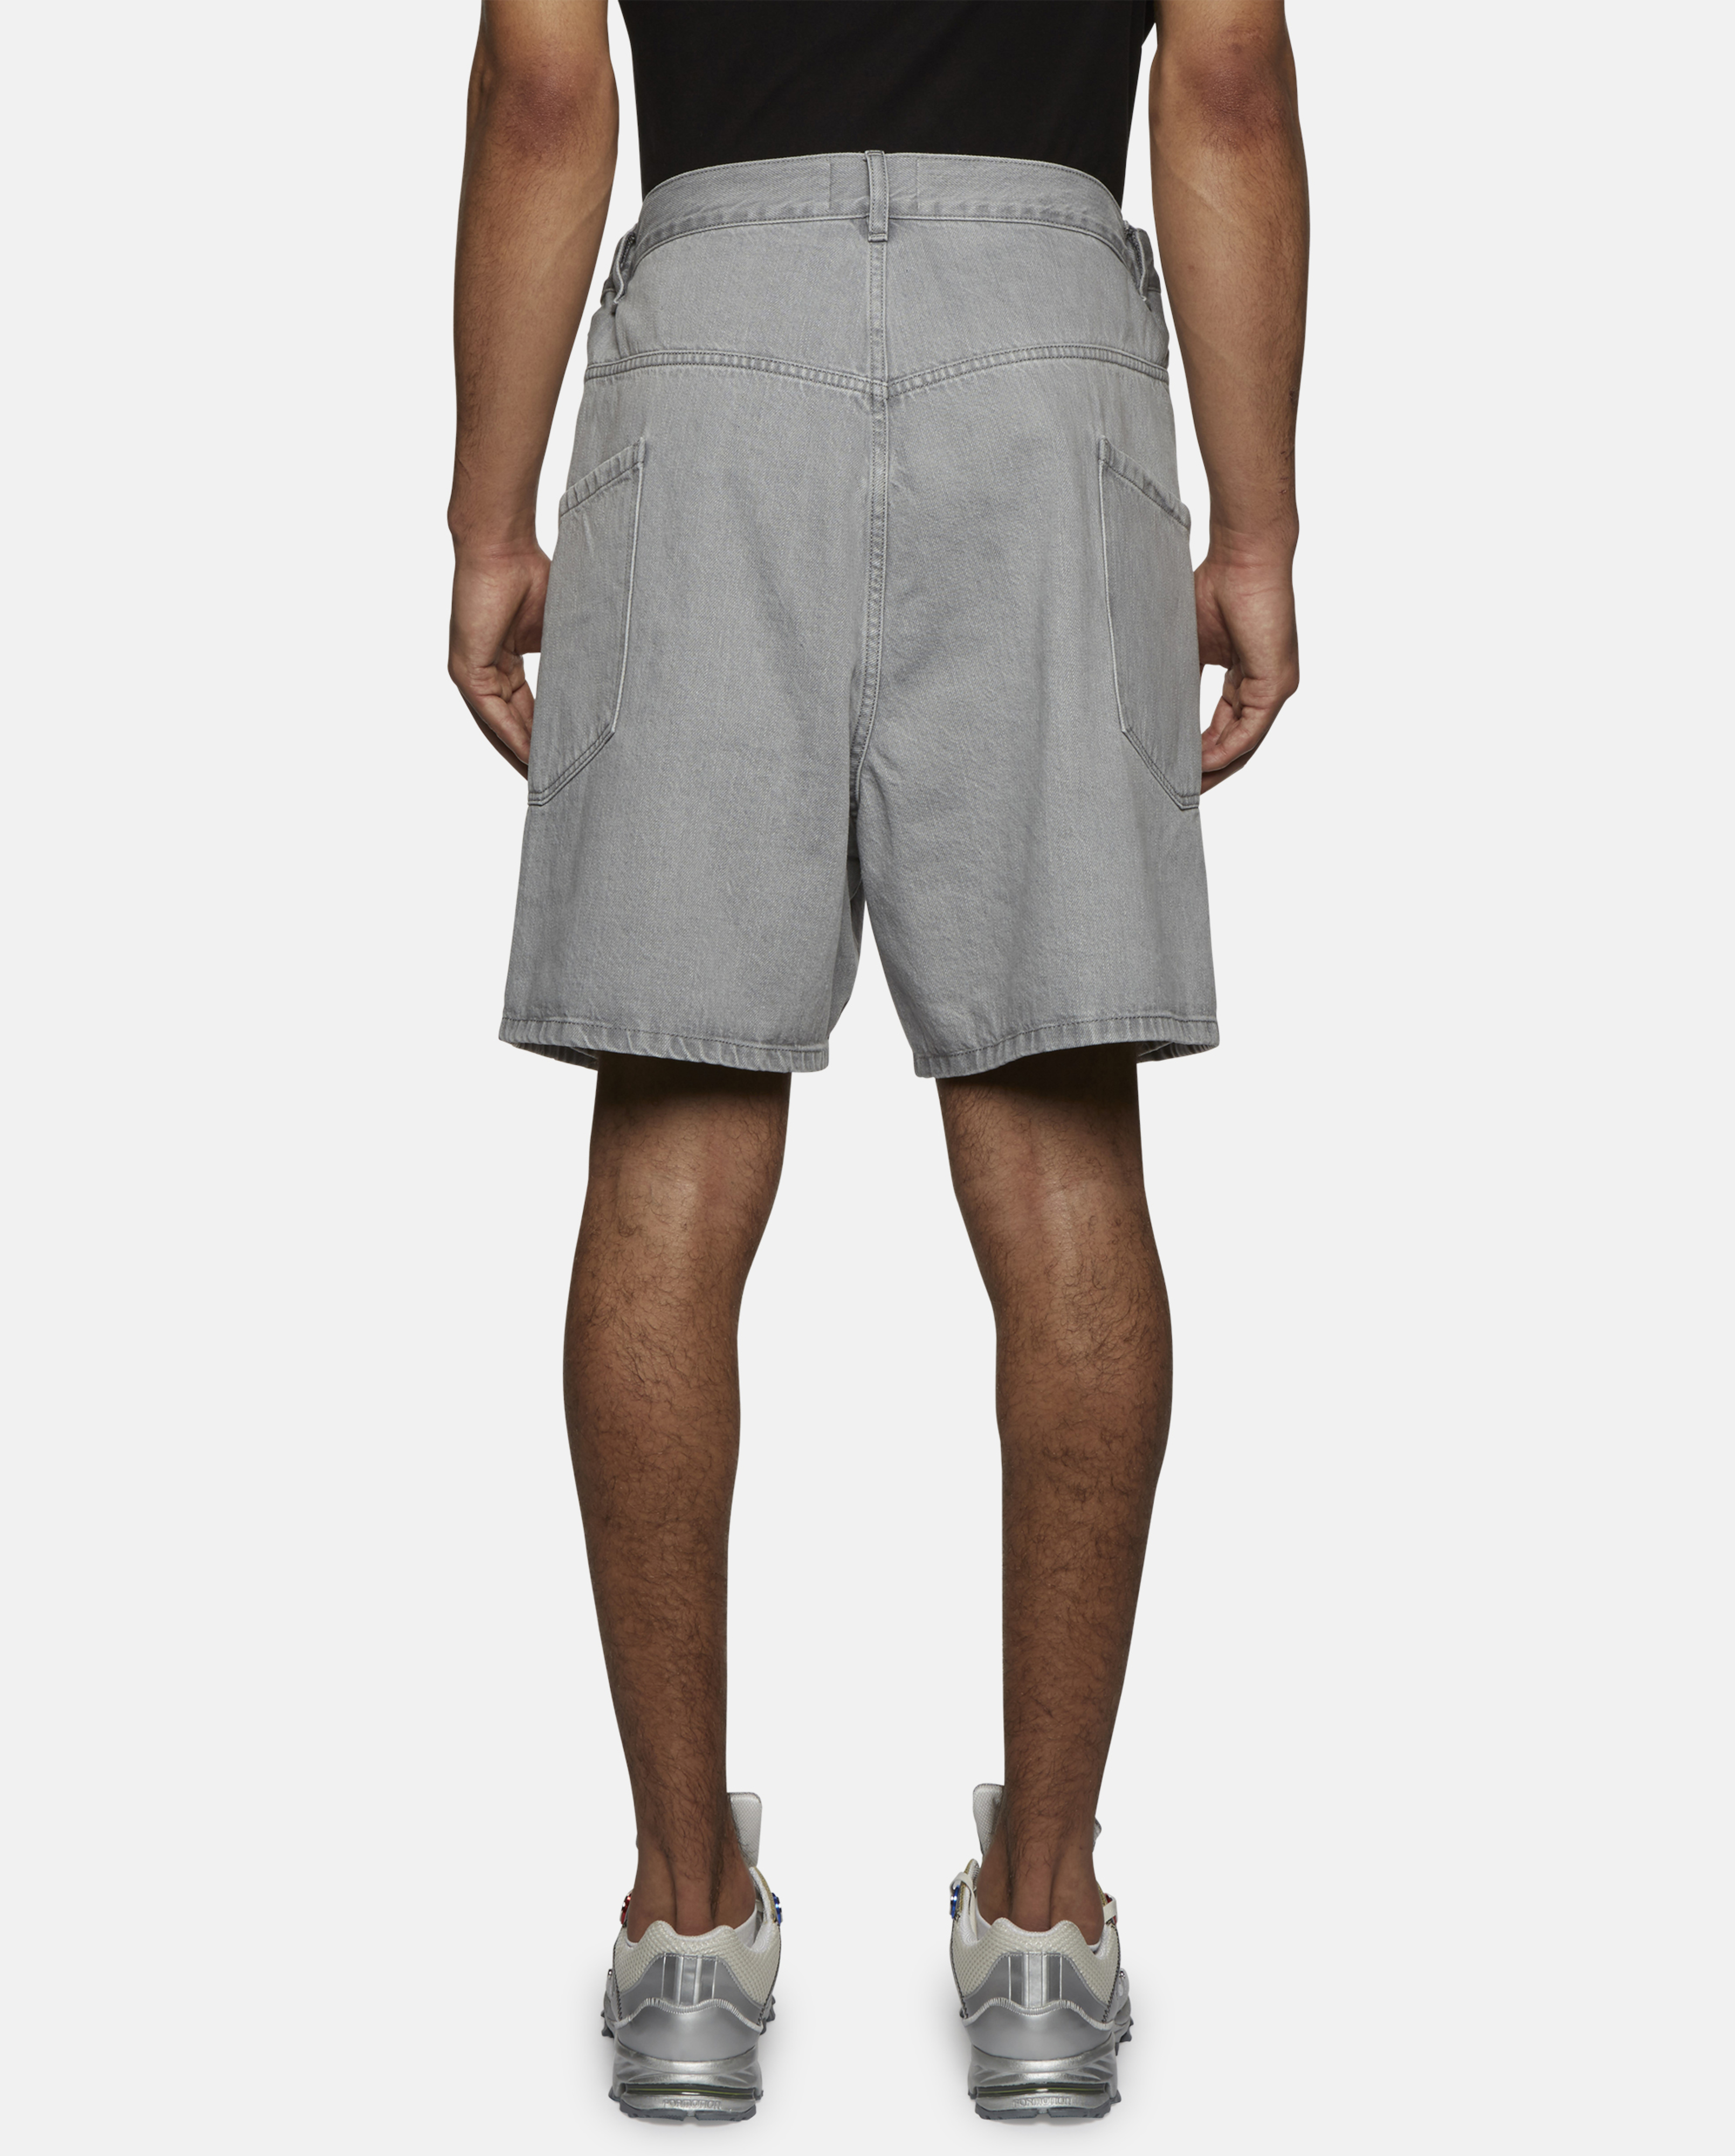 6f0c258183a Lyst - Christopher Shannon Denim Double Width Shorts in Gray for Men